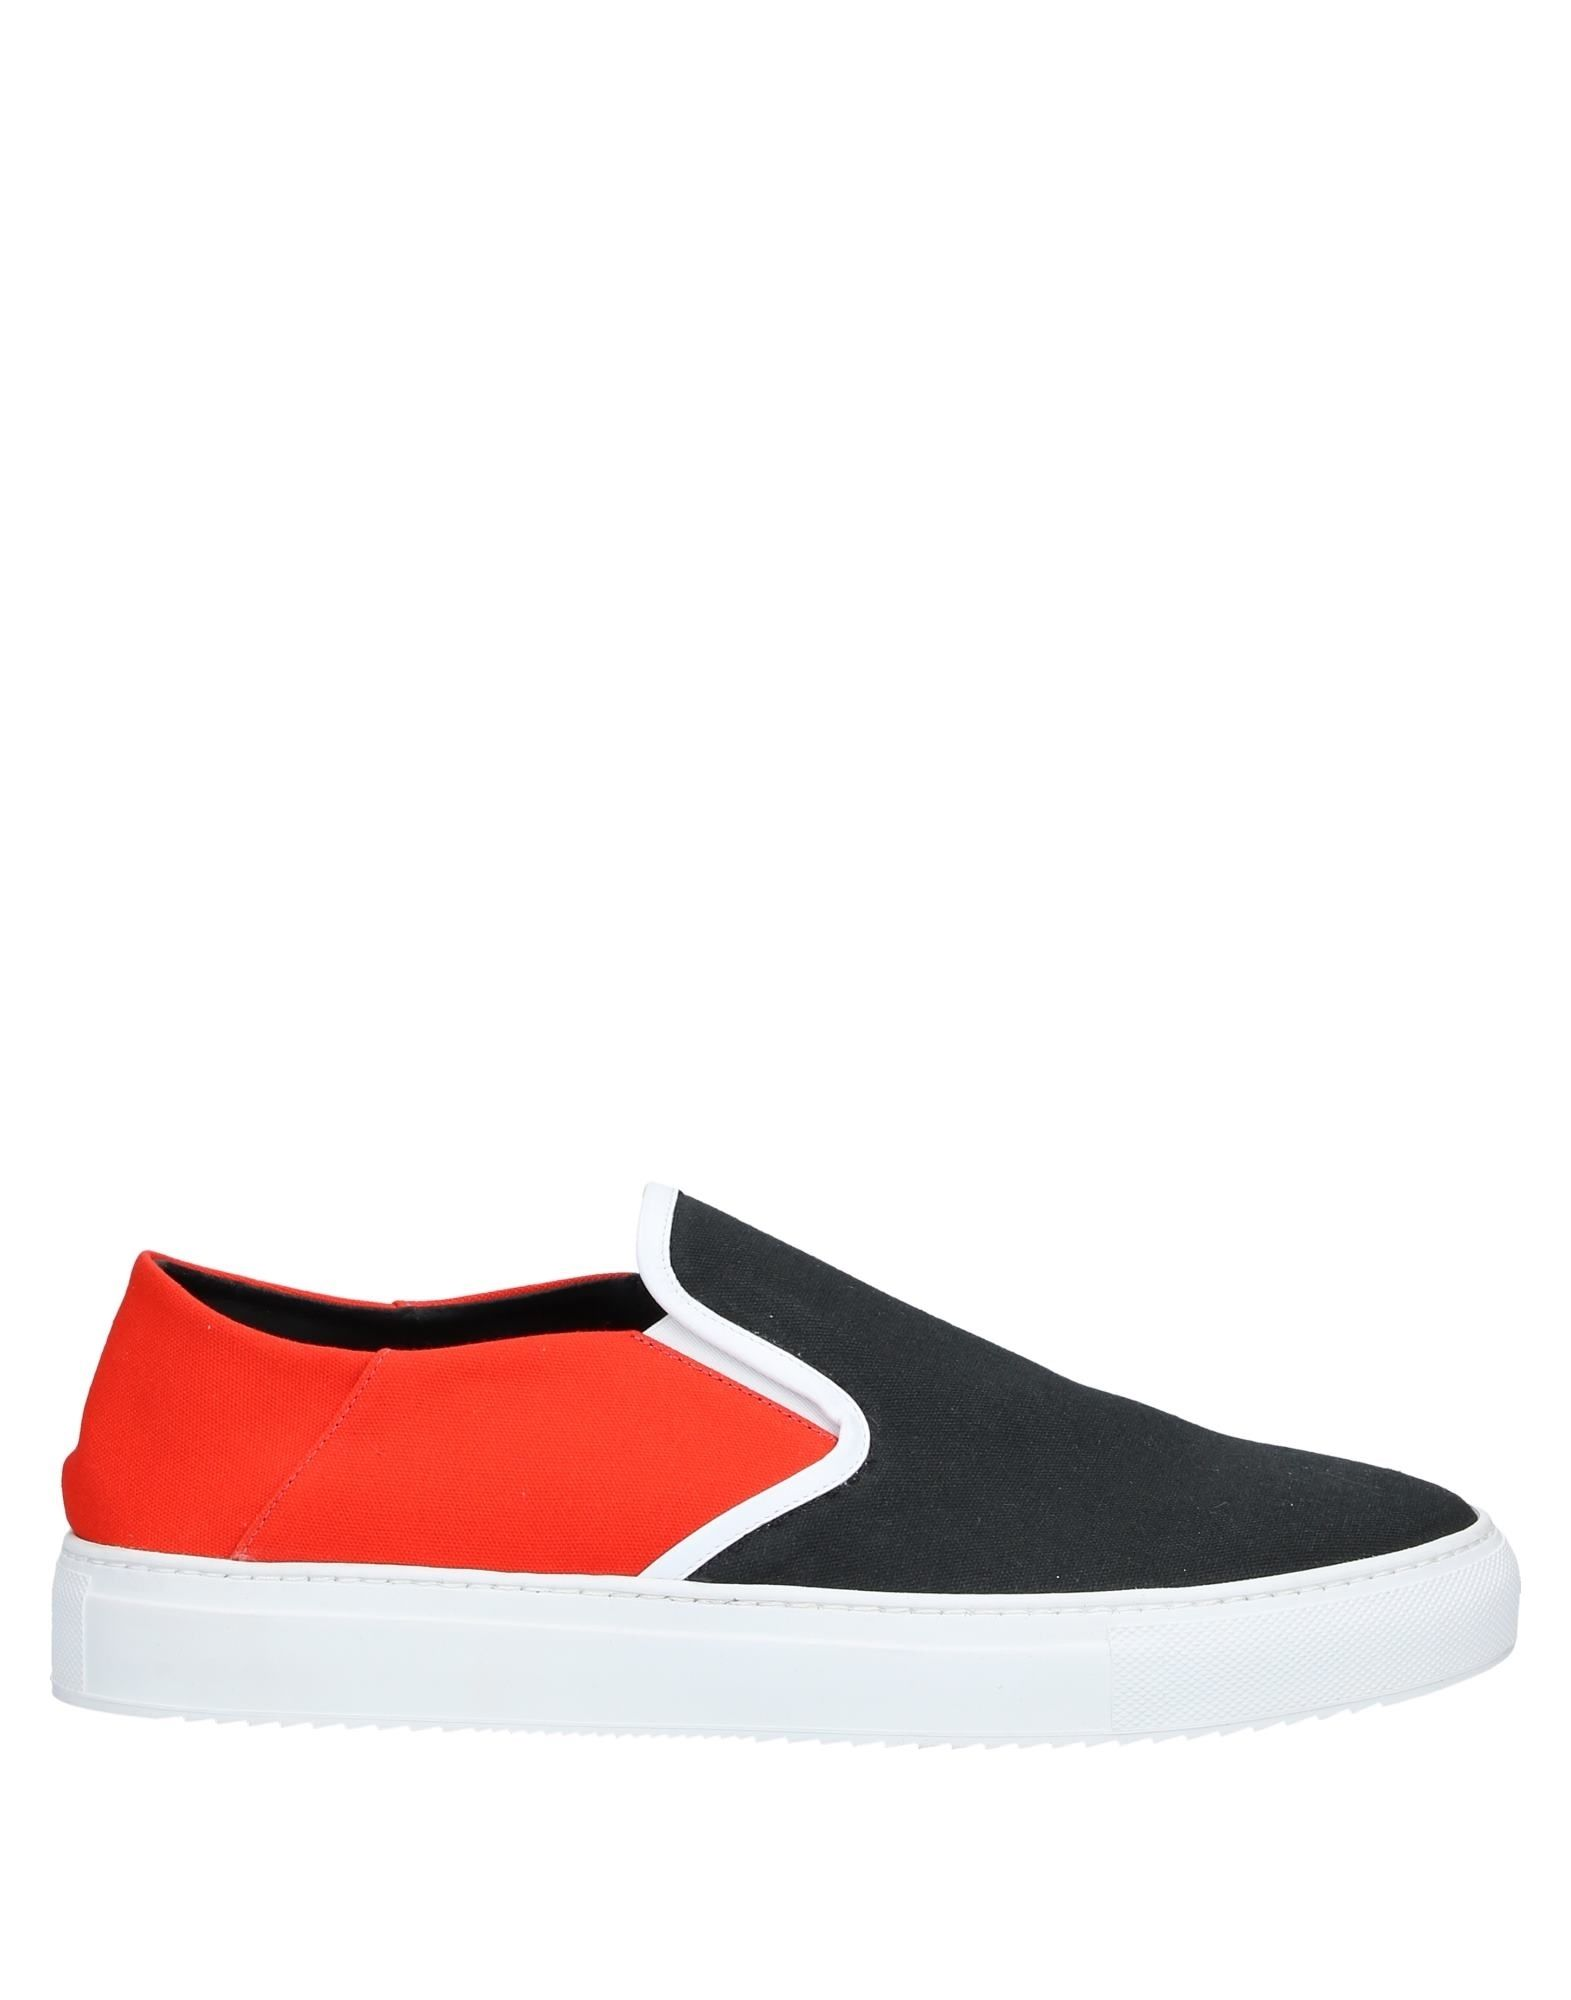 MARCELO BURLON Sneakers. canvas, no appliqués, two-tone, elasticized gores, round toeline, flat, leather lining, rubber sole, contains non-textile parts of animal origin. Textile fibers, Soft Leather